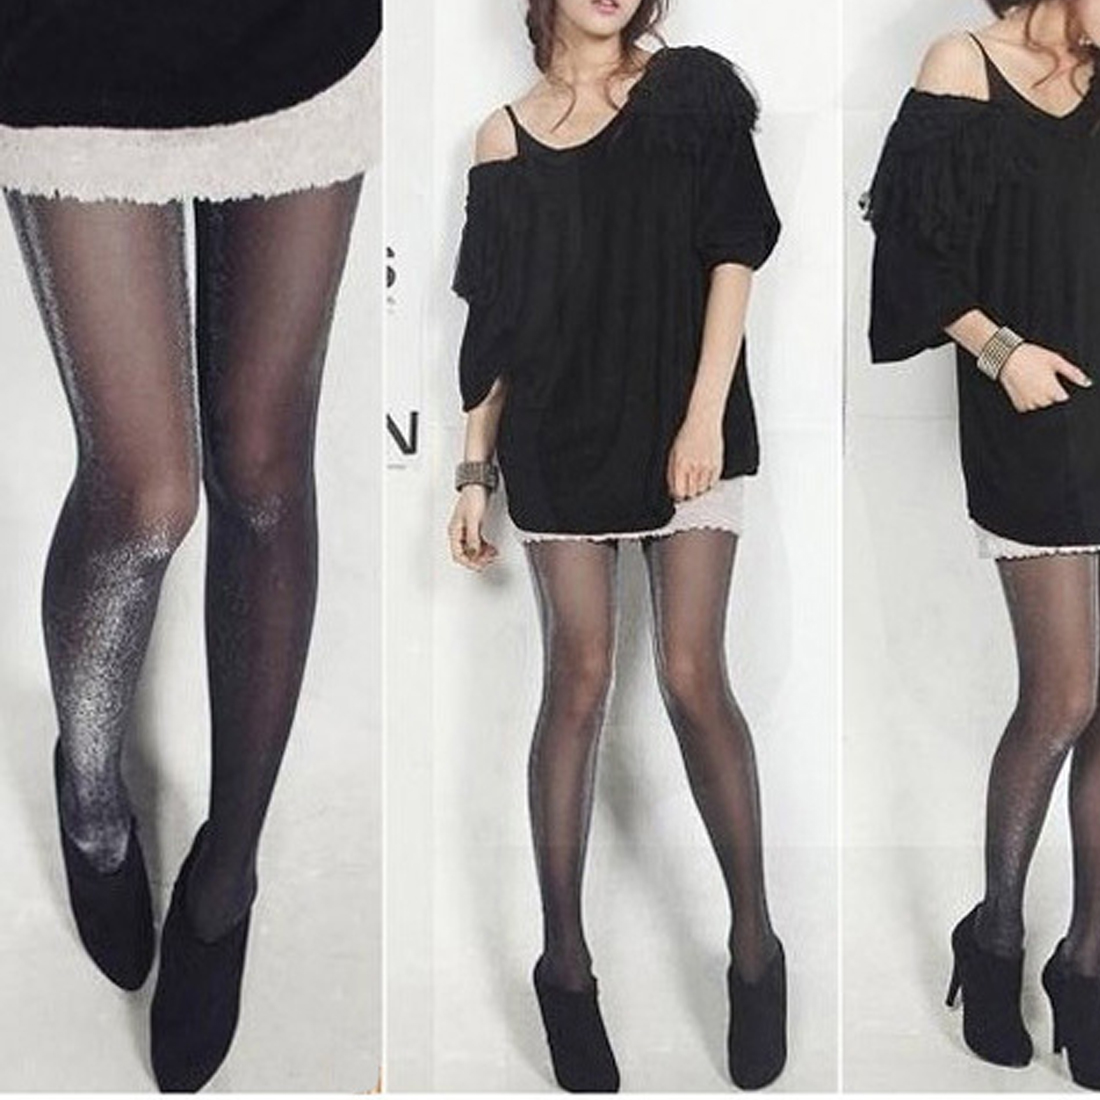 Buy 1 Pcs Shiny Pantyhose Glitter Stockings Womens Glossy Thin Tights Charming Slim Seamless Stay Collant Medias Hosiery